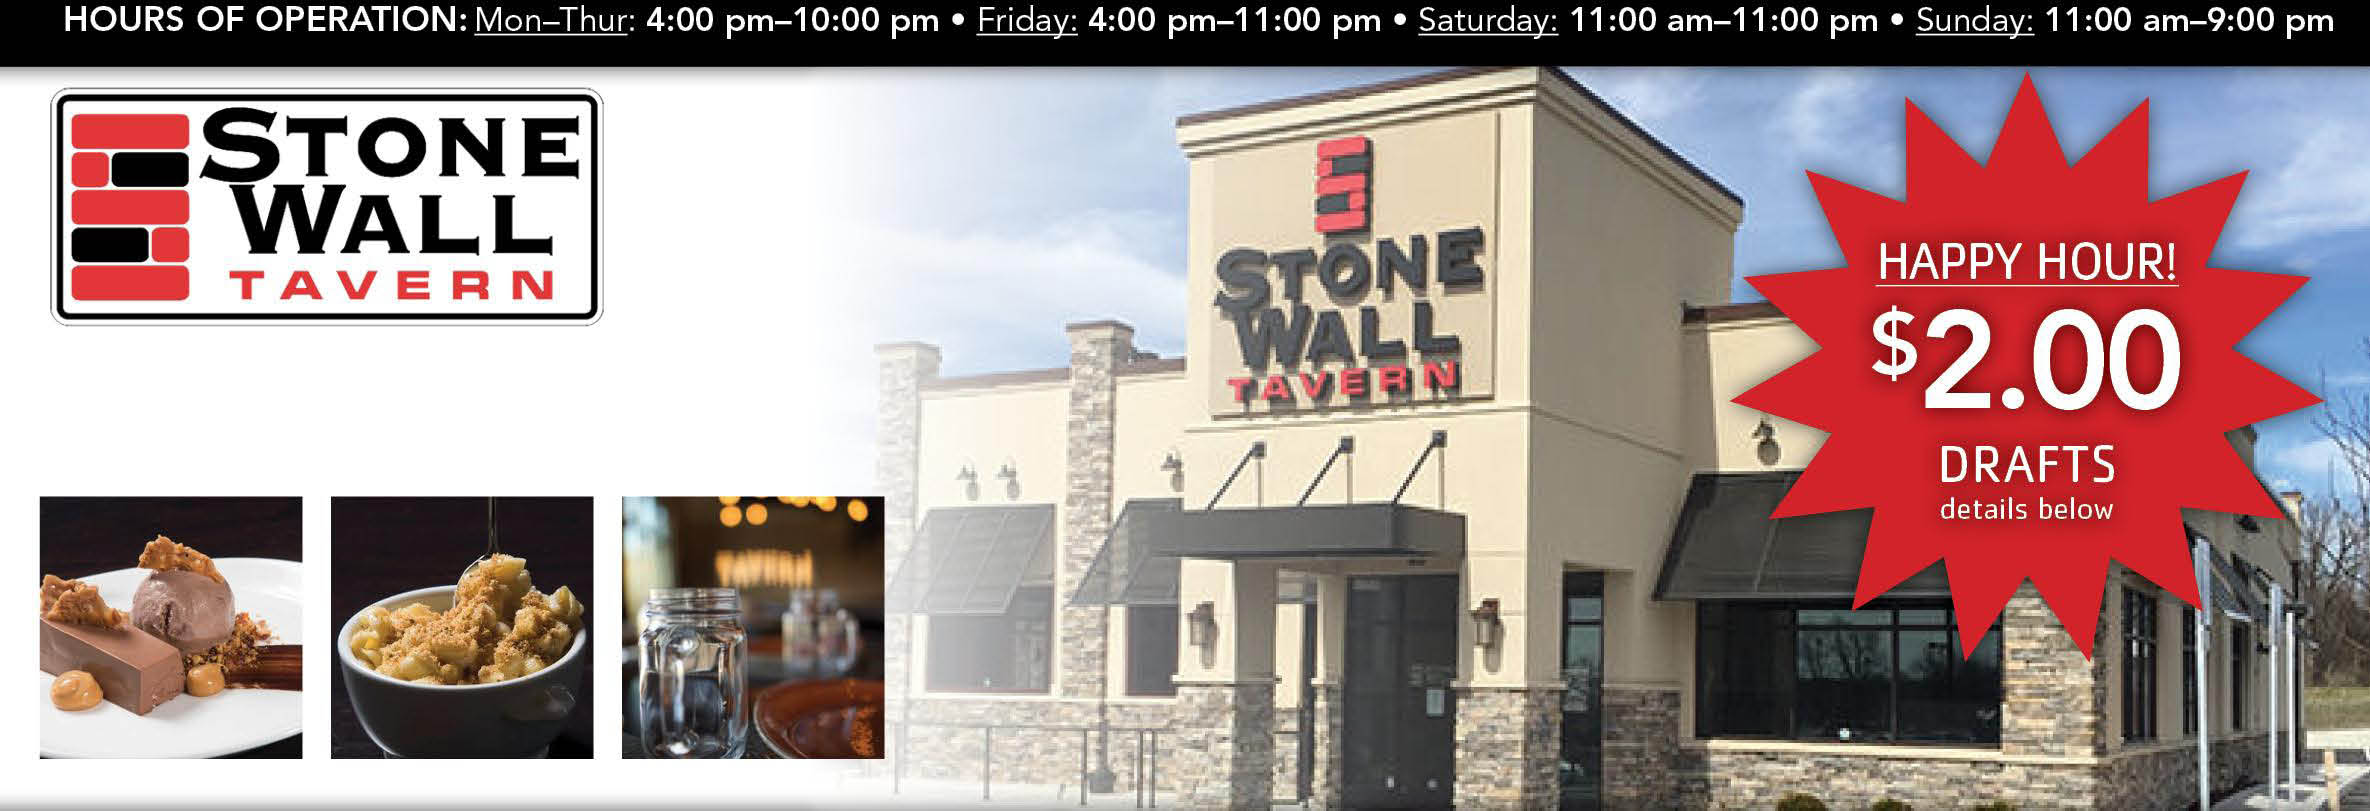 Stone Wall Tavern, Lunch, Dinner, American Cuisine, Restaurant, Food, Local